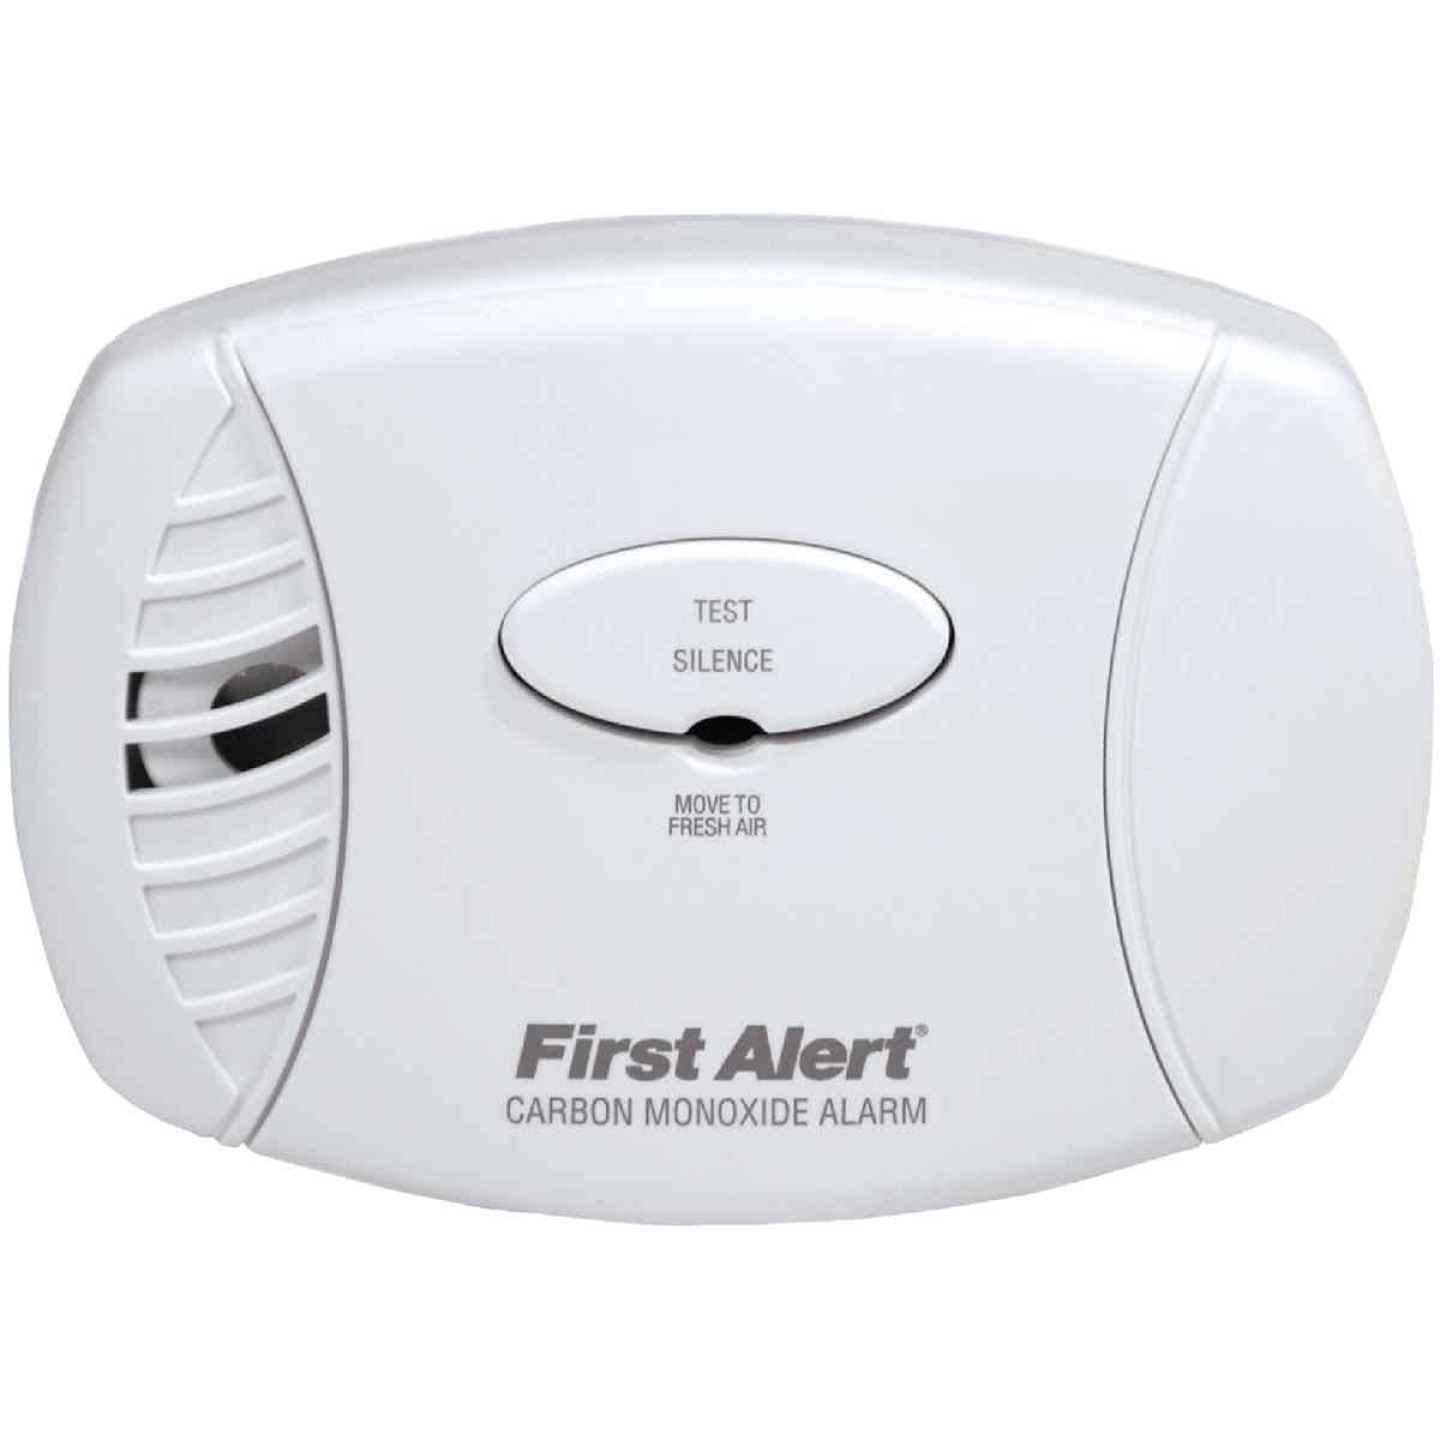 First Alert Plug-In 120V Electrochemical Carbon Monoxide Alarm Image 1